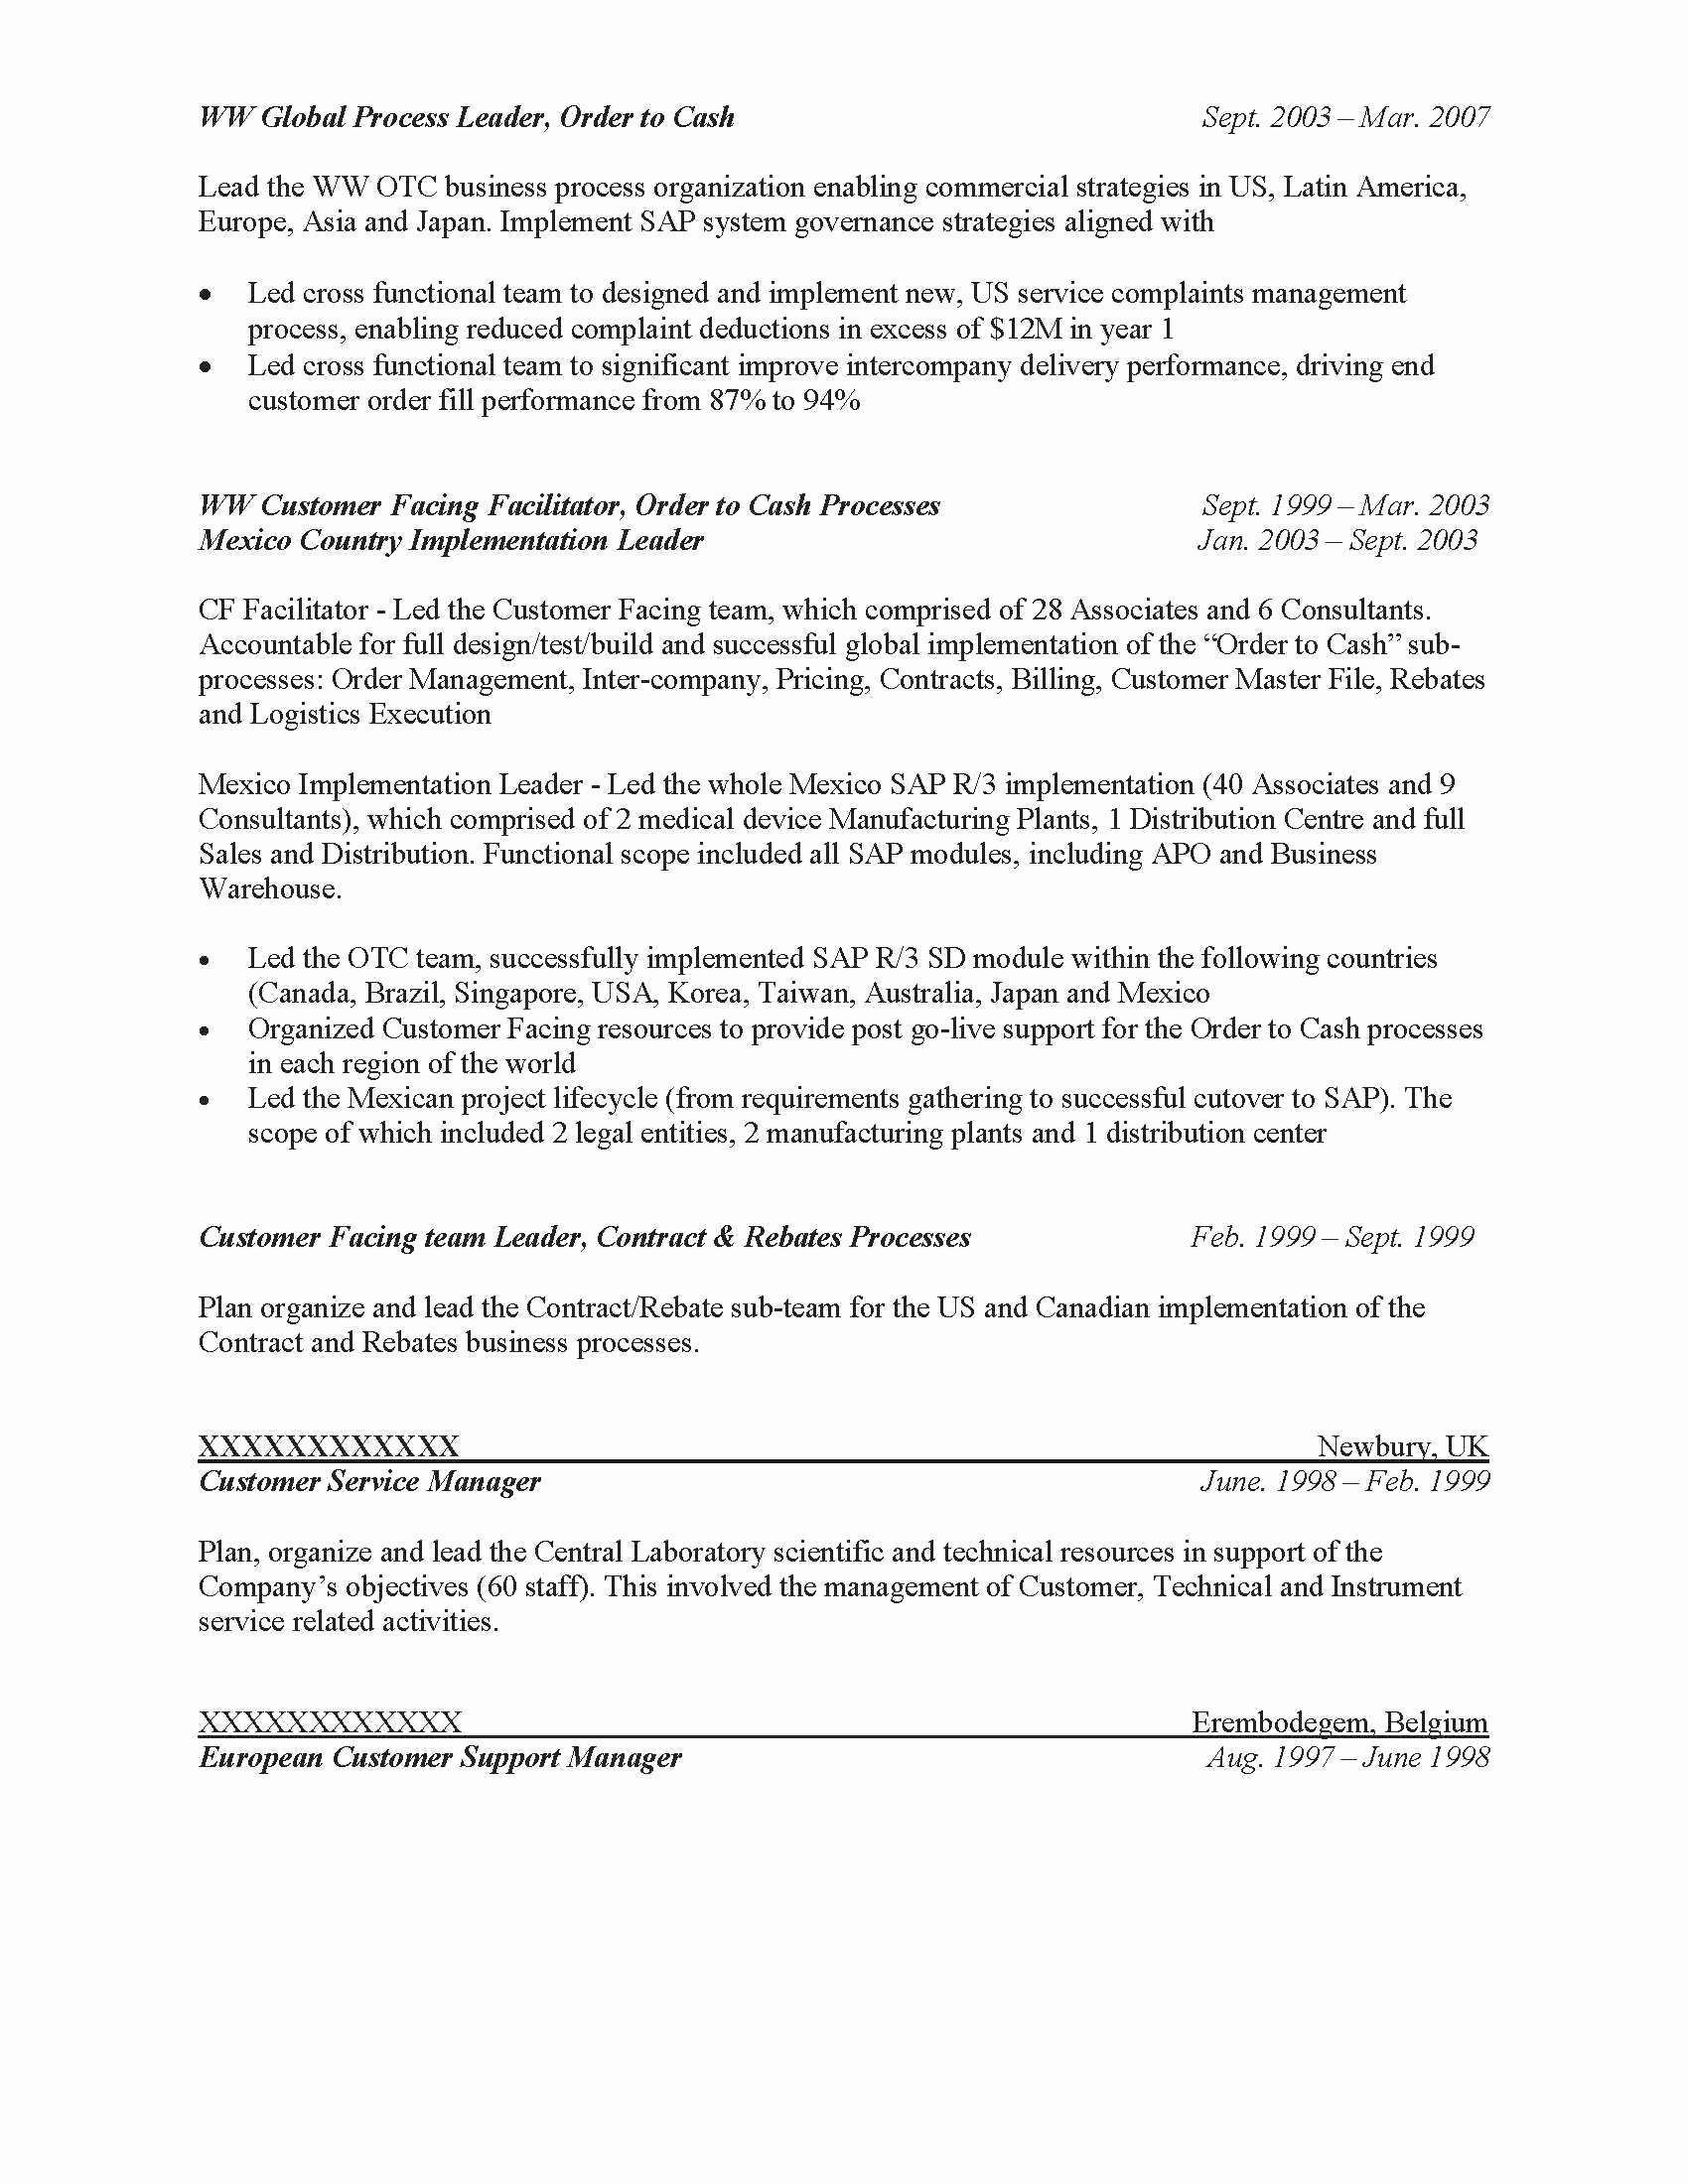 Separation Agreement Template Word Best Of Separation Agreement Template Word Uk Inspirational